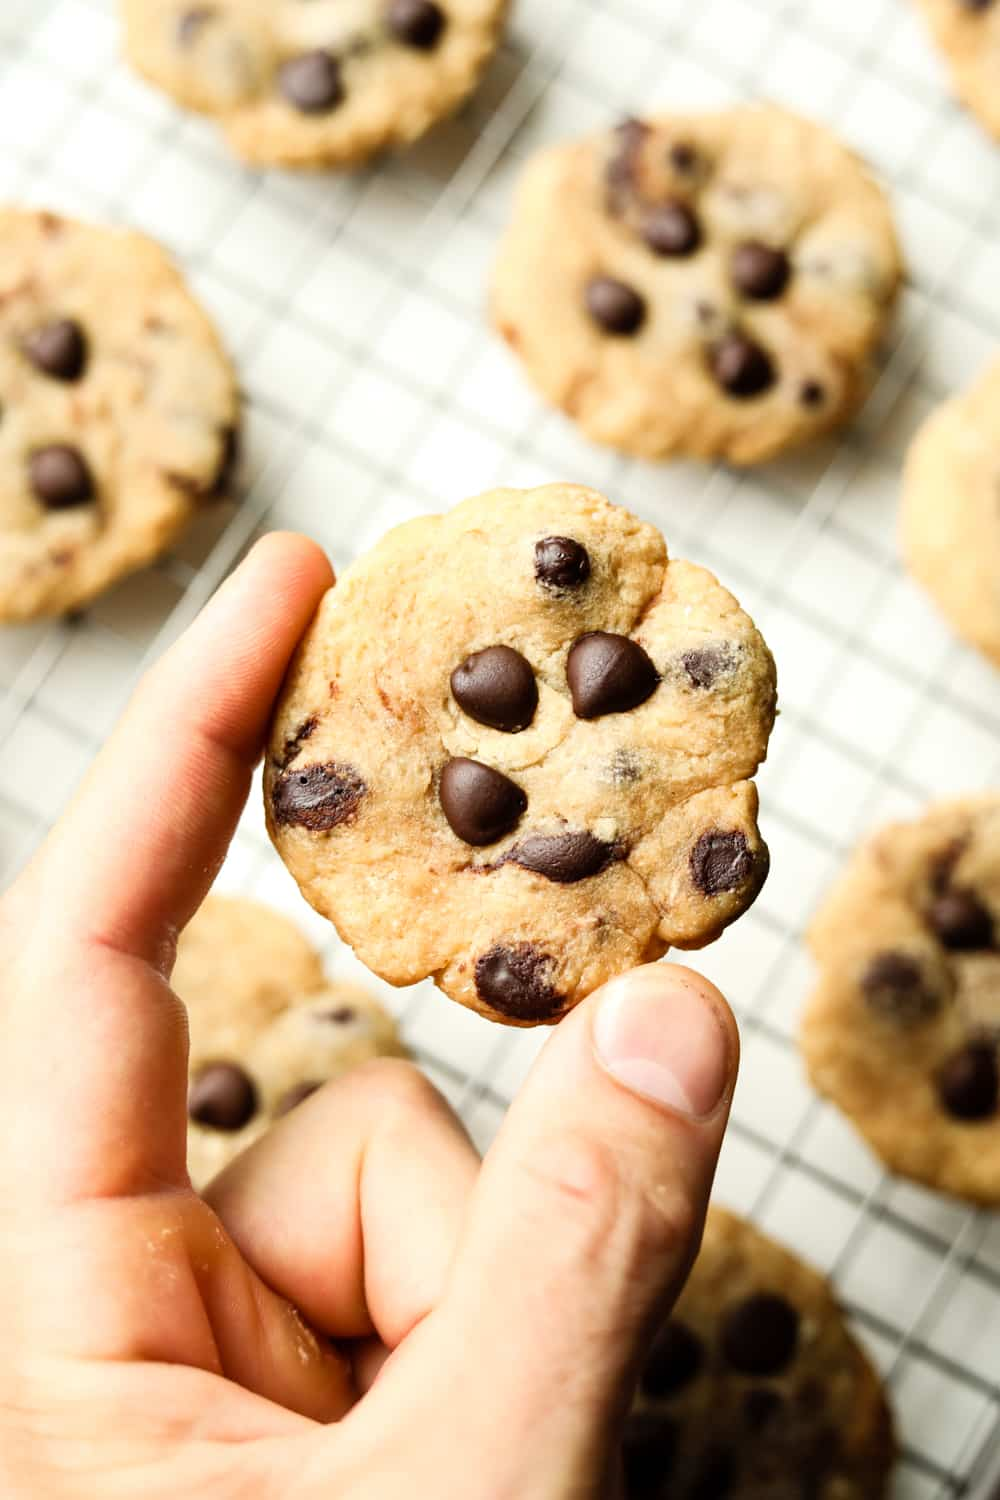 A hand holding a chocolate chip cookie. There are other cookies on a wire rack underneath it.